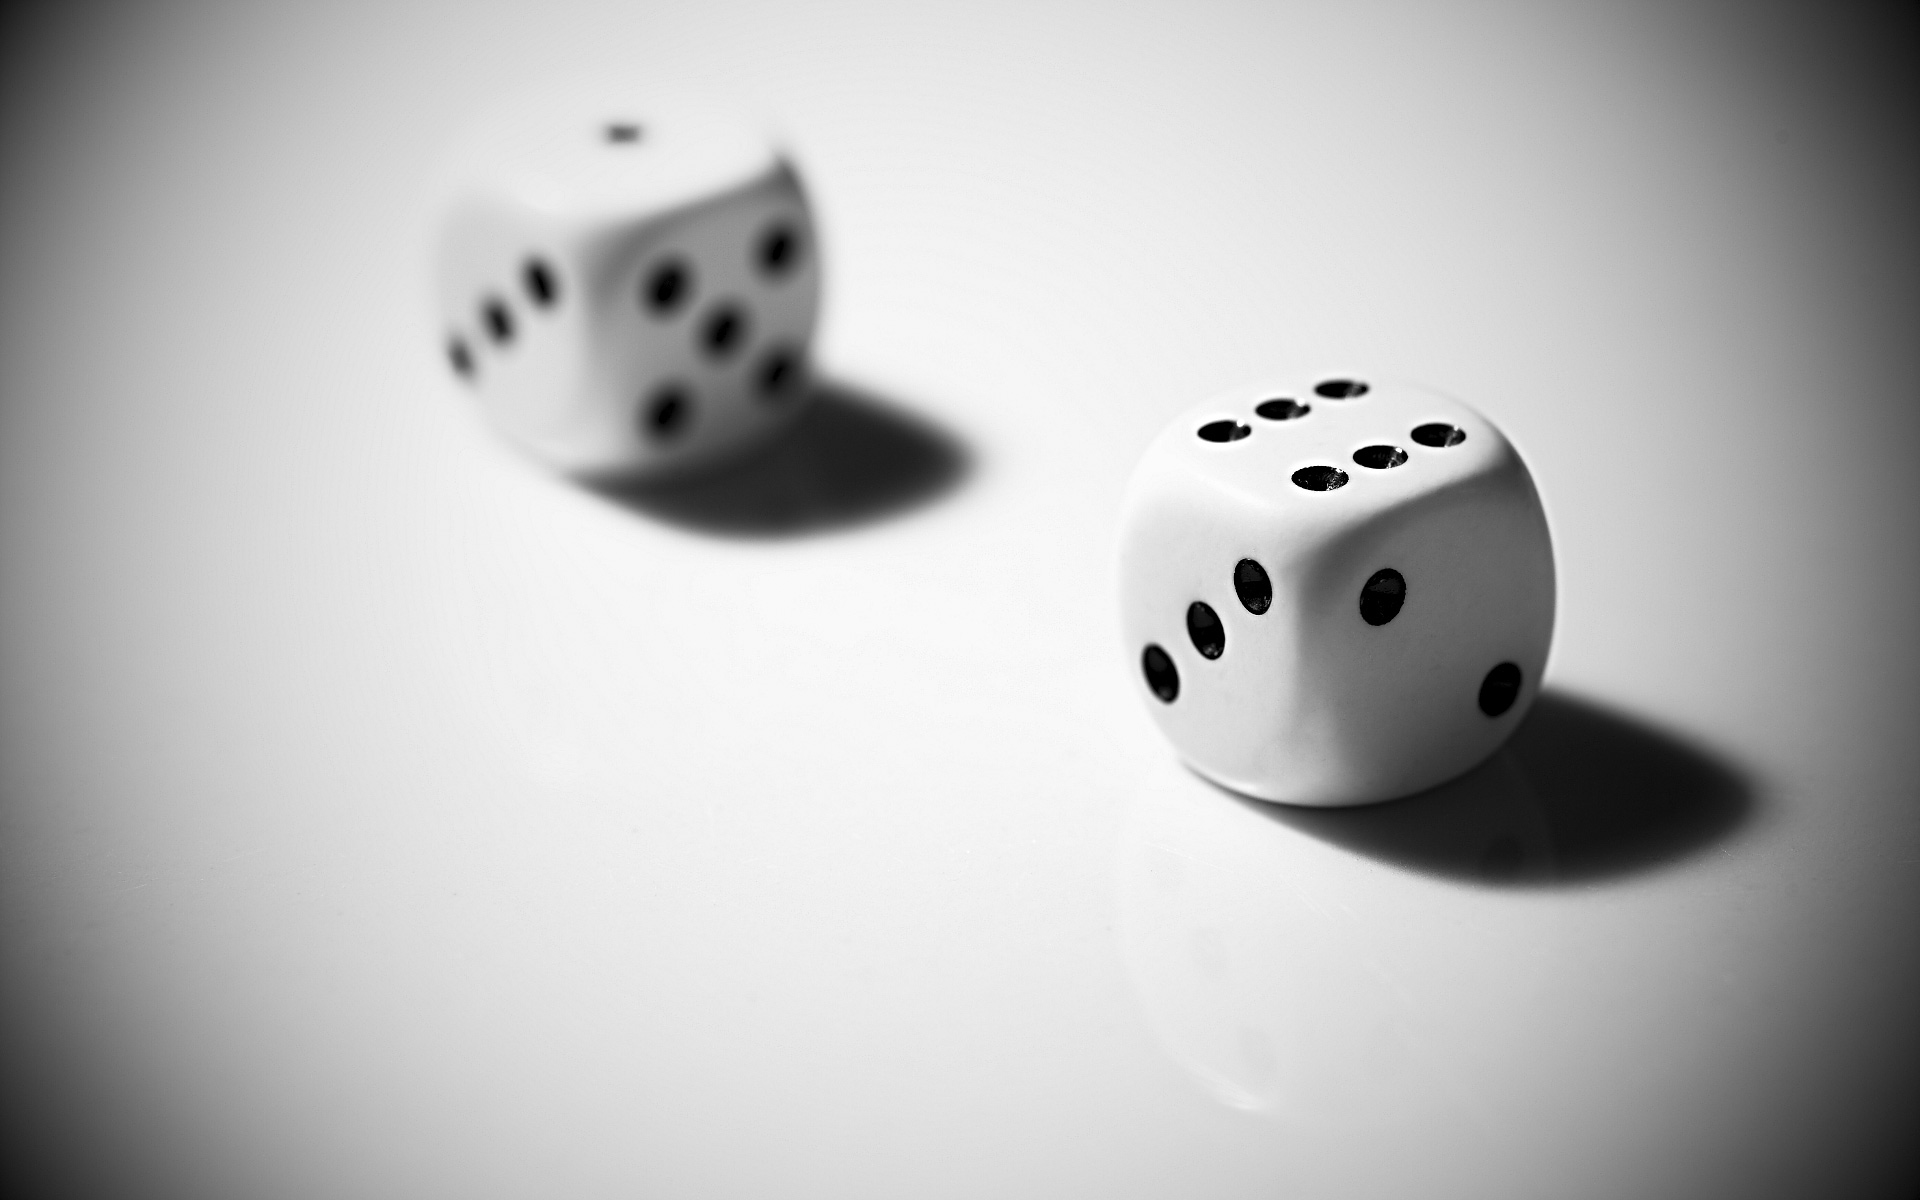 Dice Black and White Picture | 1920 x 1200 | Download | Close: www.bhmpics.com/view-dice_black_and_white_picture-wide.html